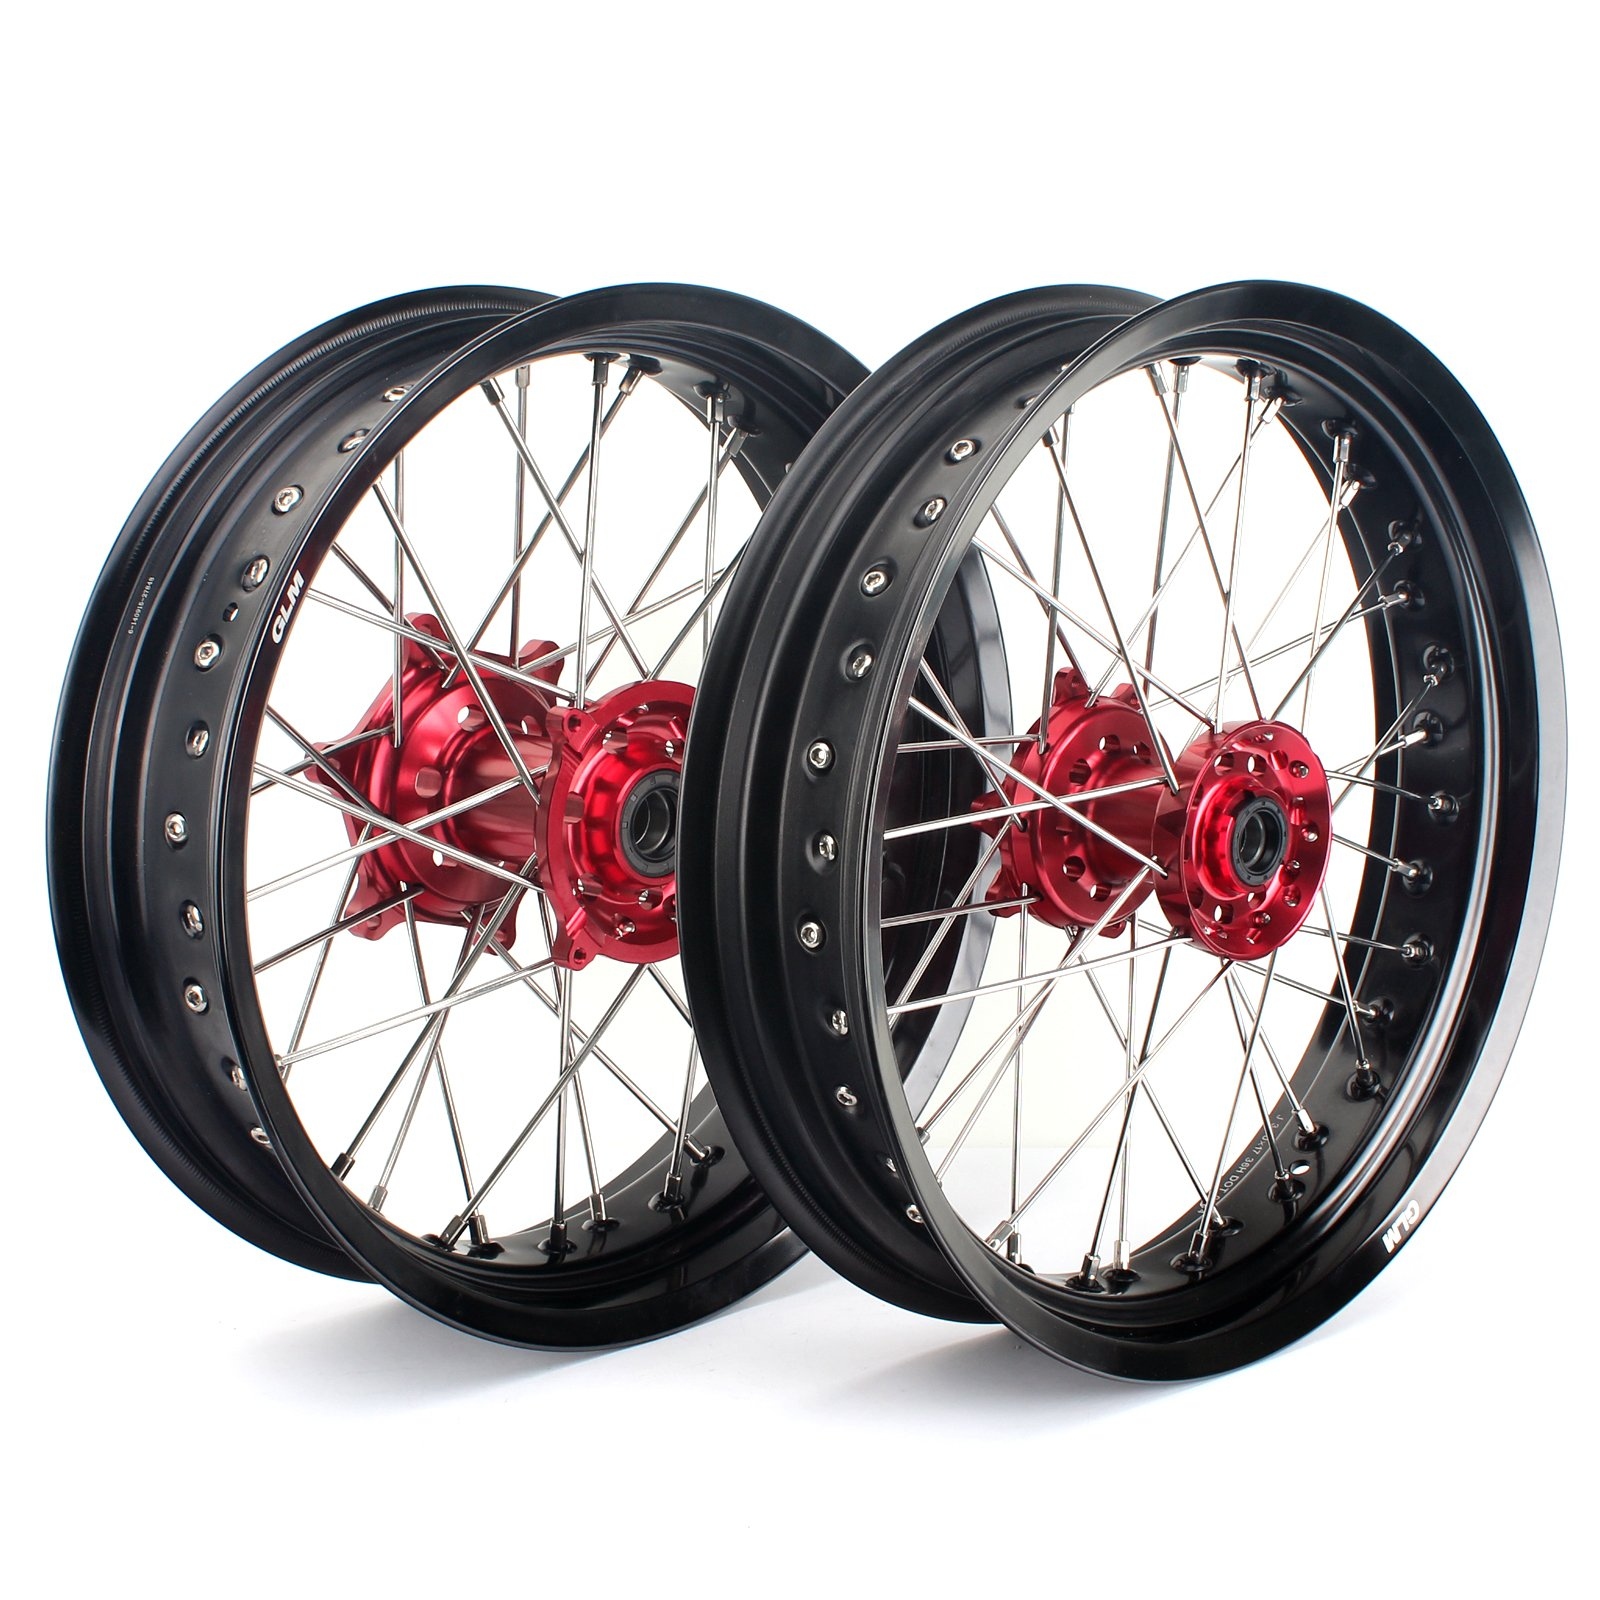 """TARAZON 17"""" & 17"""" Supermoto Complete Wheel Set Red Hubs Black Rims for Honda CRF250R 04-13 CRF450R 02-12 CRF250 X 04-16 CRF450 X 04-16 CR125R CR250R 02-13 Front and Rear wheels"""